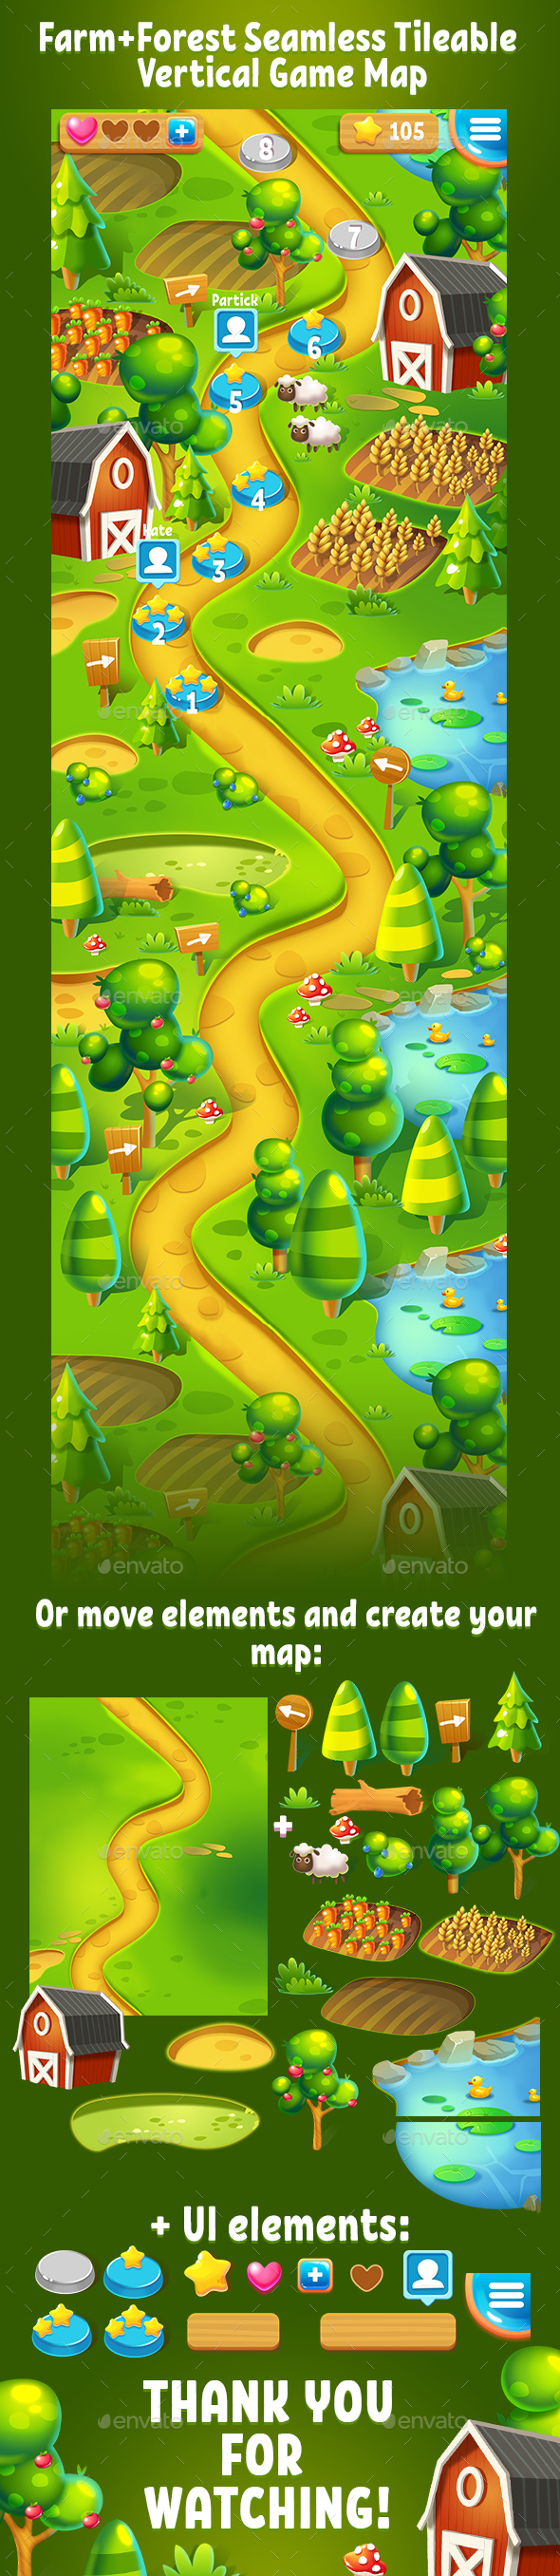 Farm and Forest Tileable Seamless Vertical Game Map - Miscellaneous Game Assets